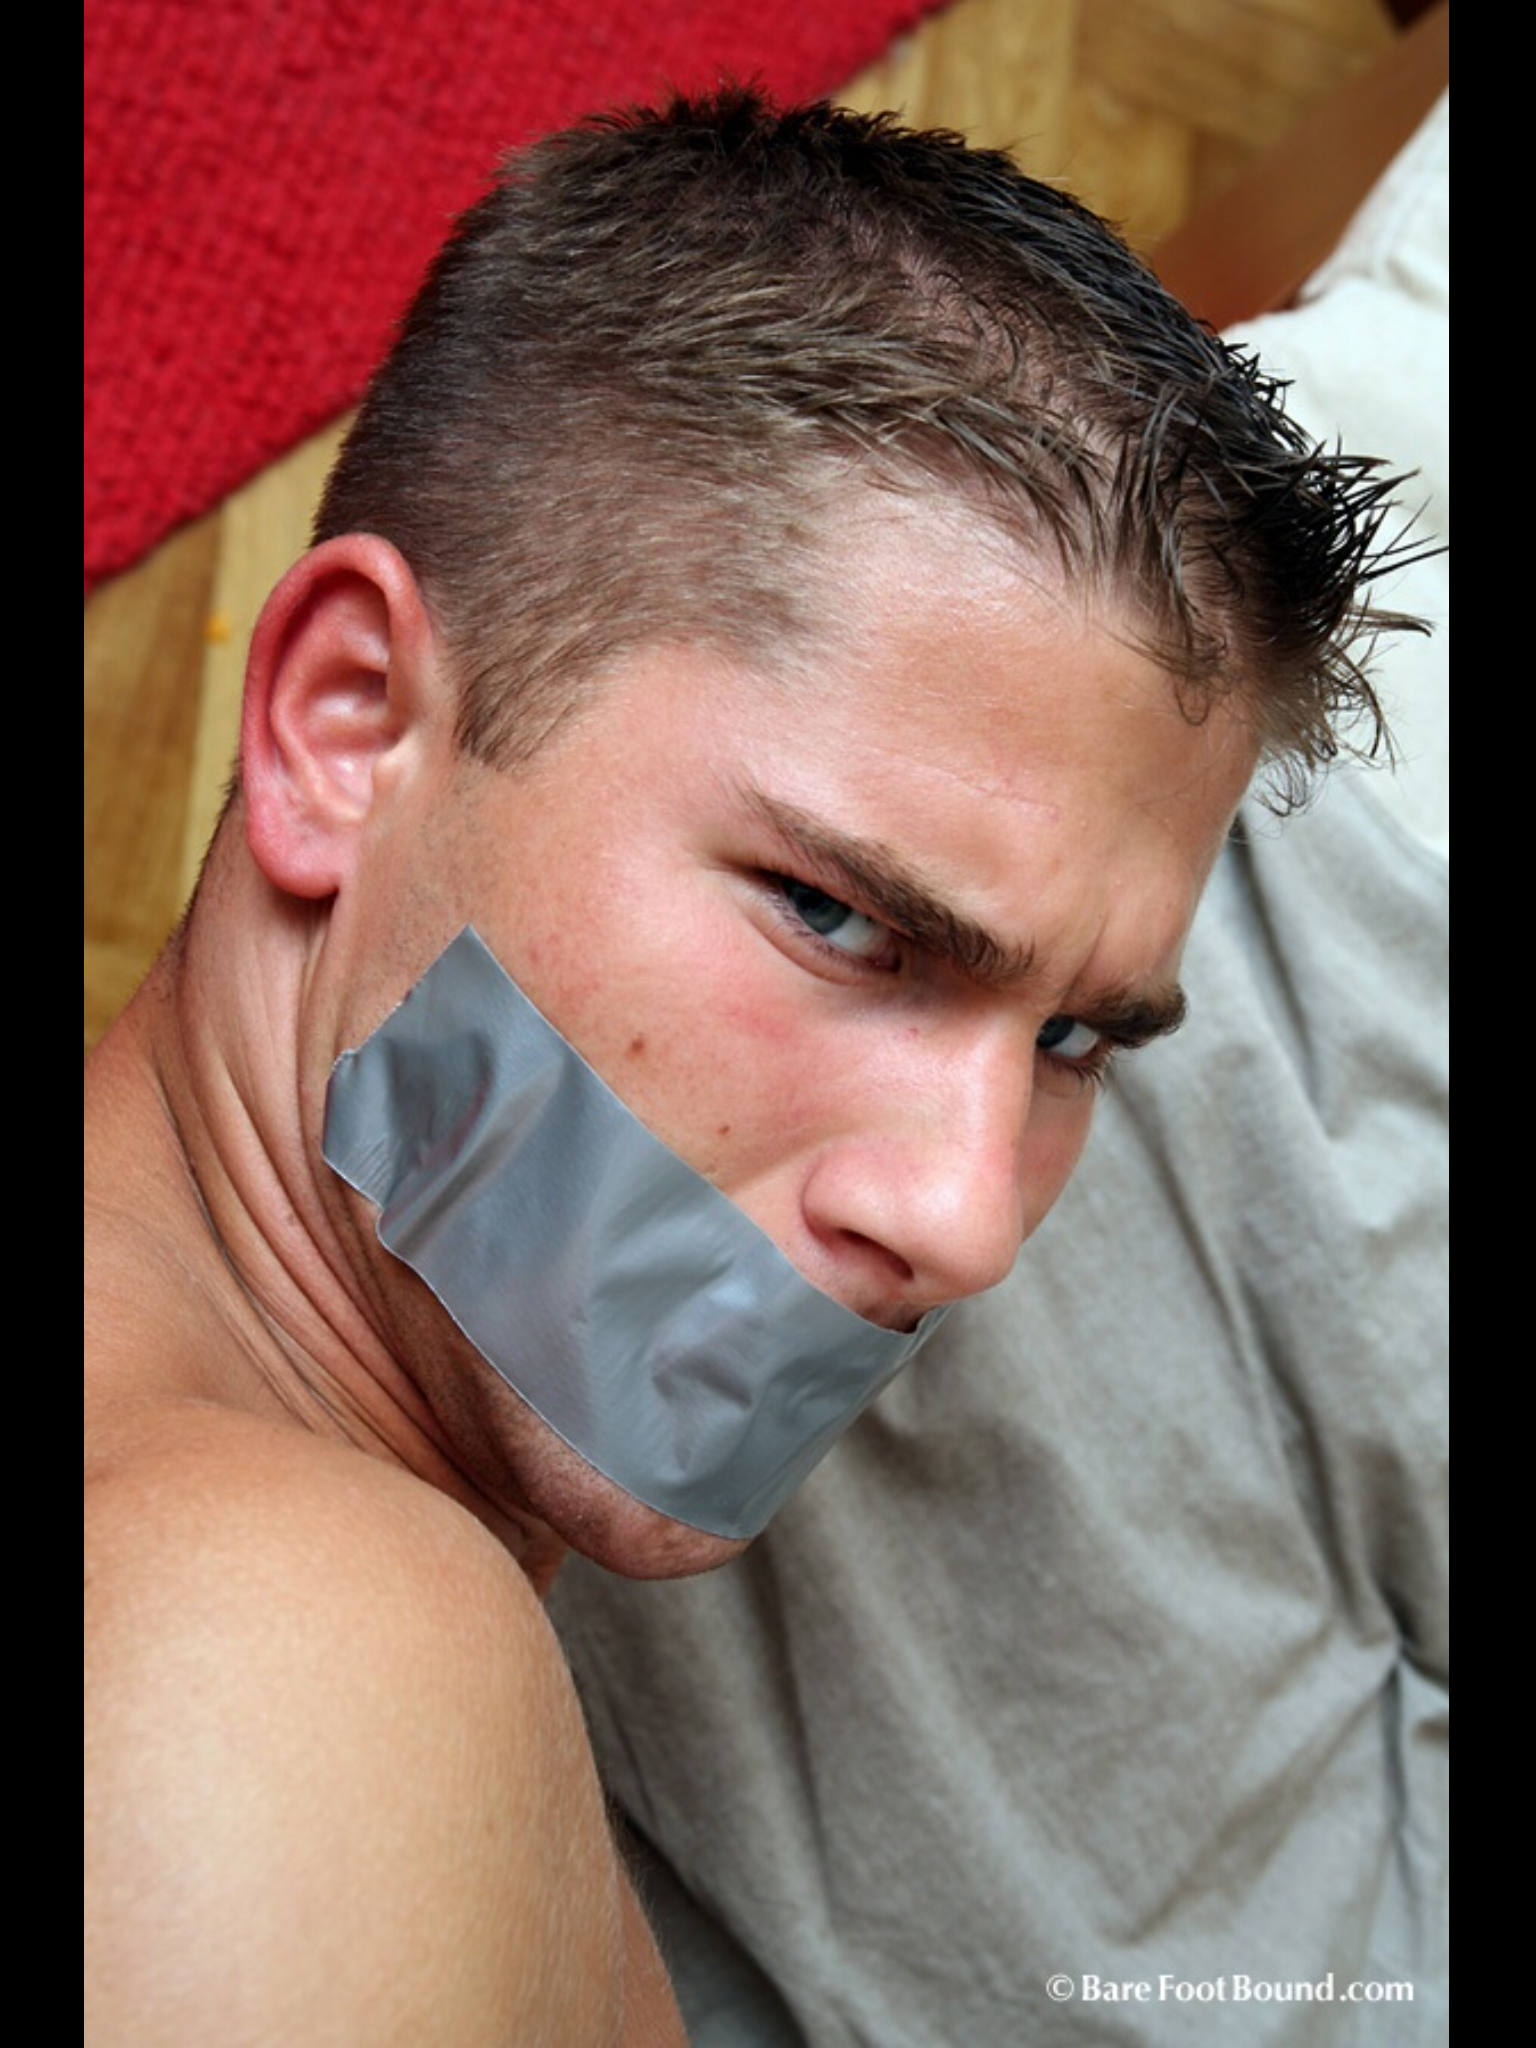 Mouths gagged with duct tape